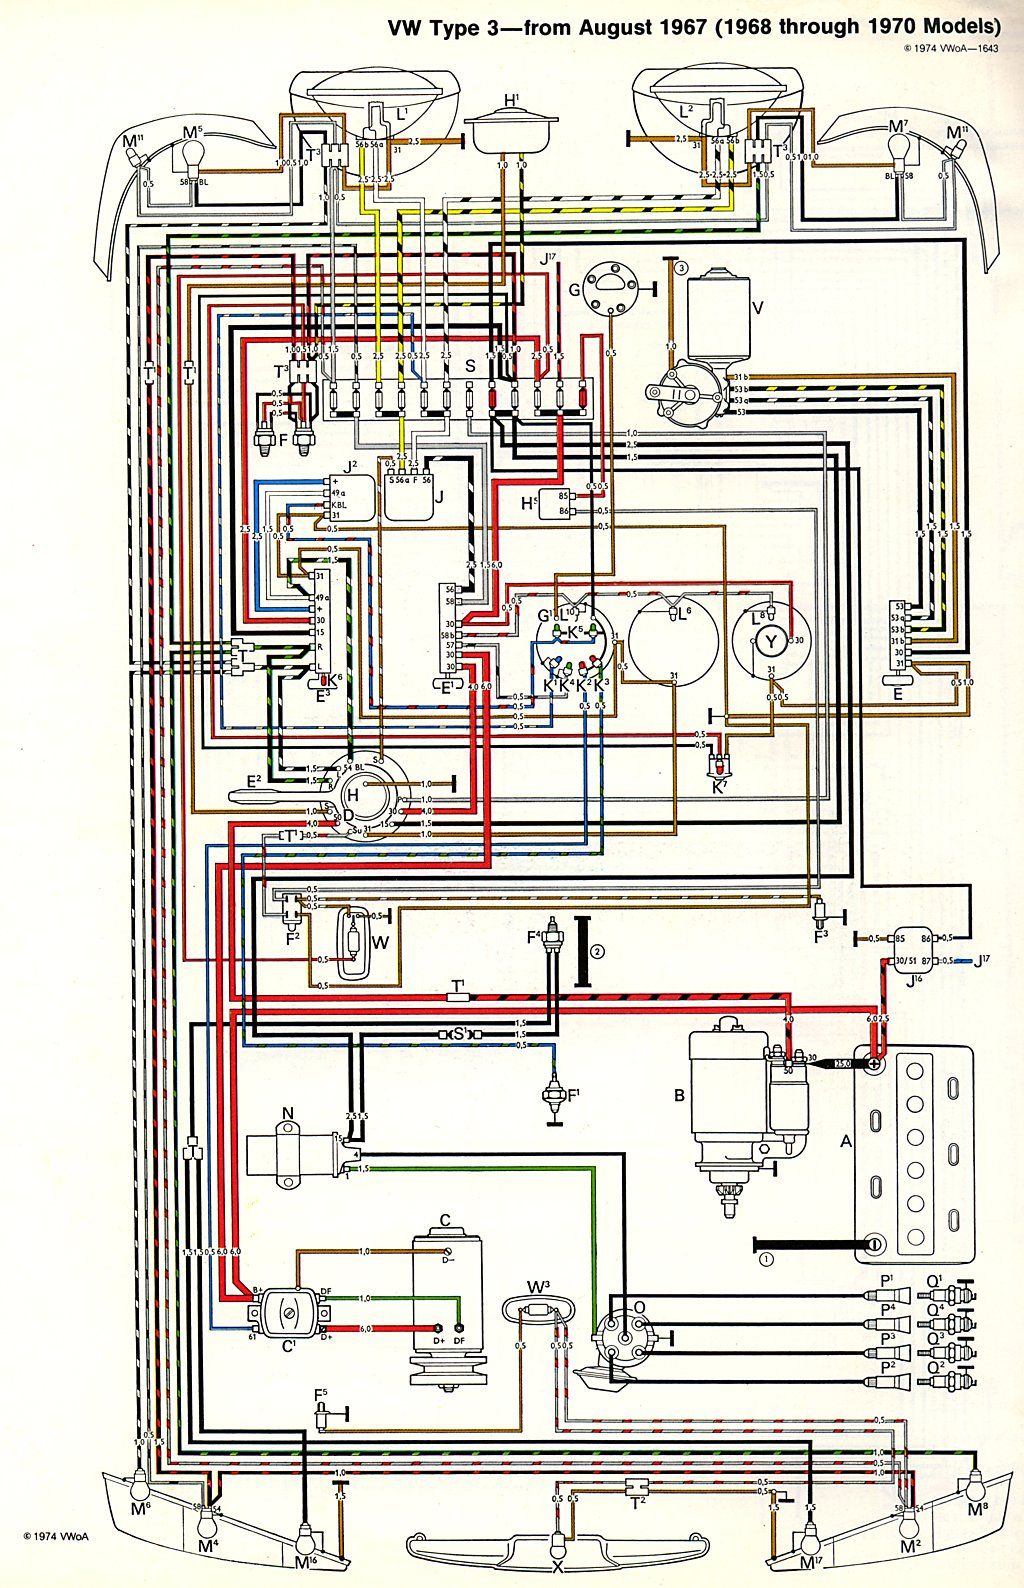 1966 vw beetle wiper motor wiring diagram 1966 wiring diagrams type3 6870 vw beetle wiper motor wiring diagram